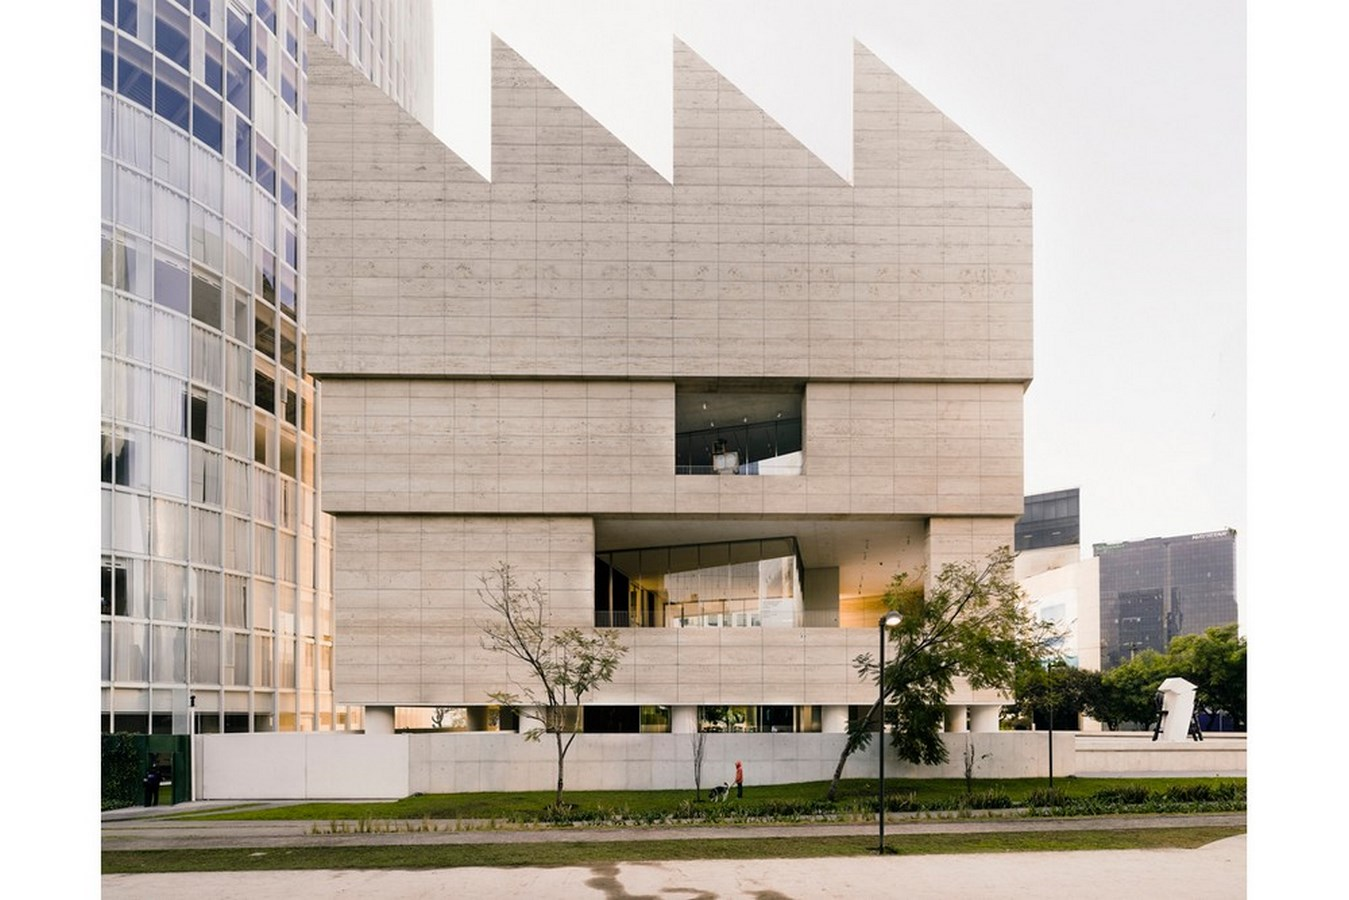 15 Projects By David Chipperfield Every Architect Must Visit! - COLECCION JUMEX, MEXICO